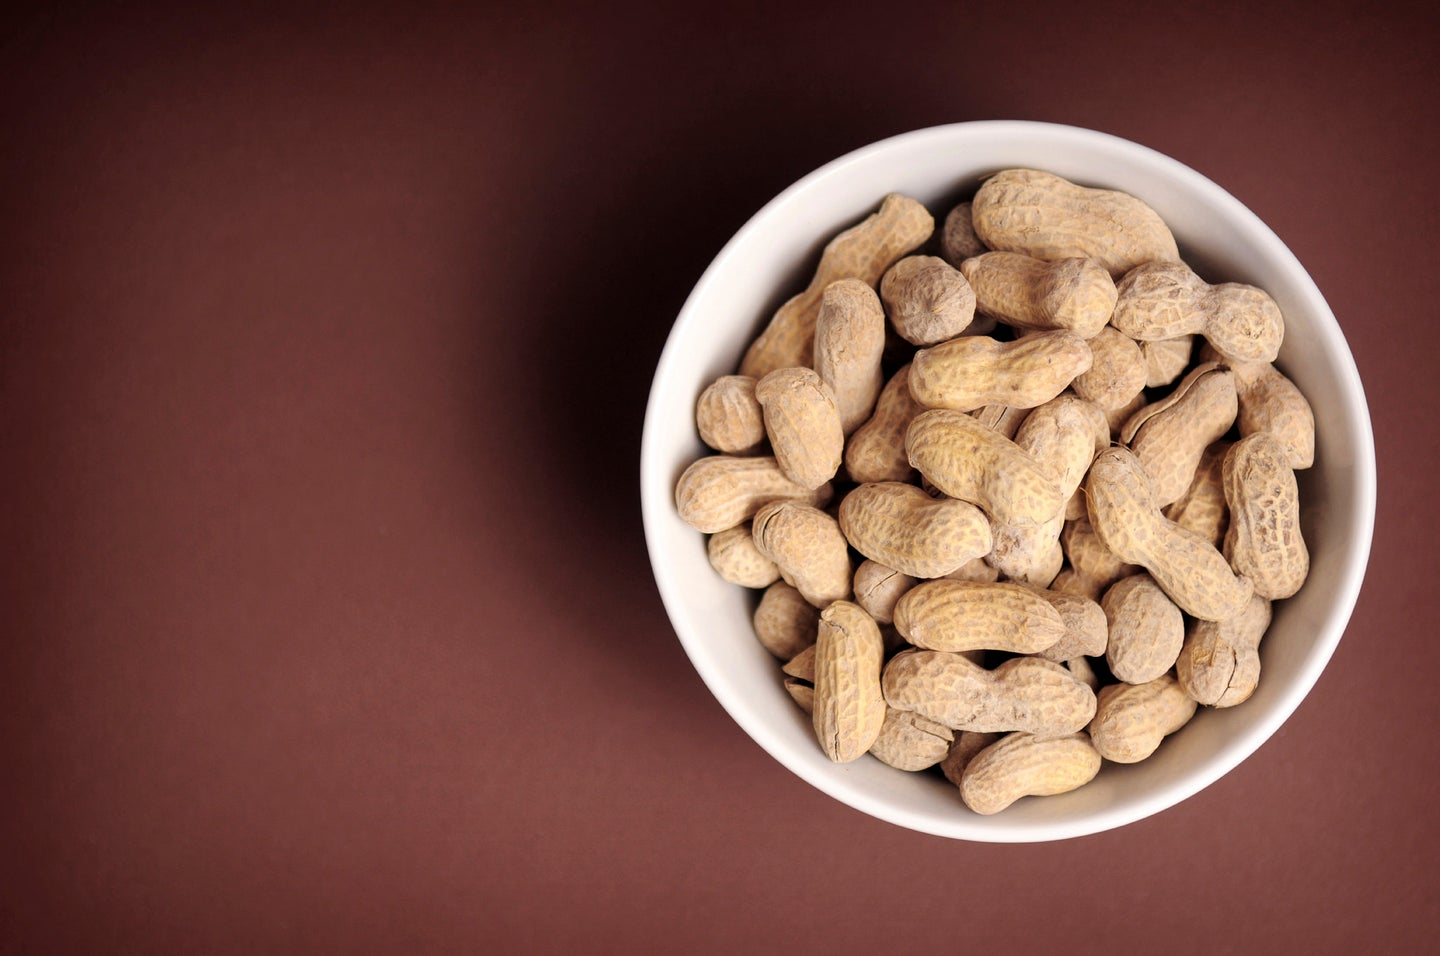 Peanut CEO Gets Harshest Food Safety Penalty Ever